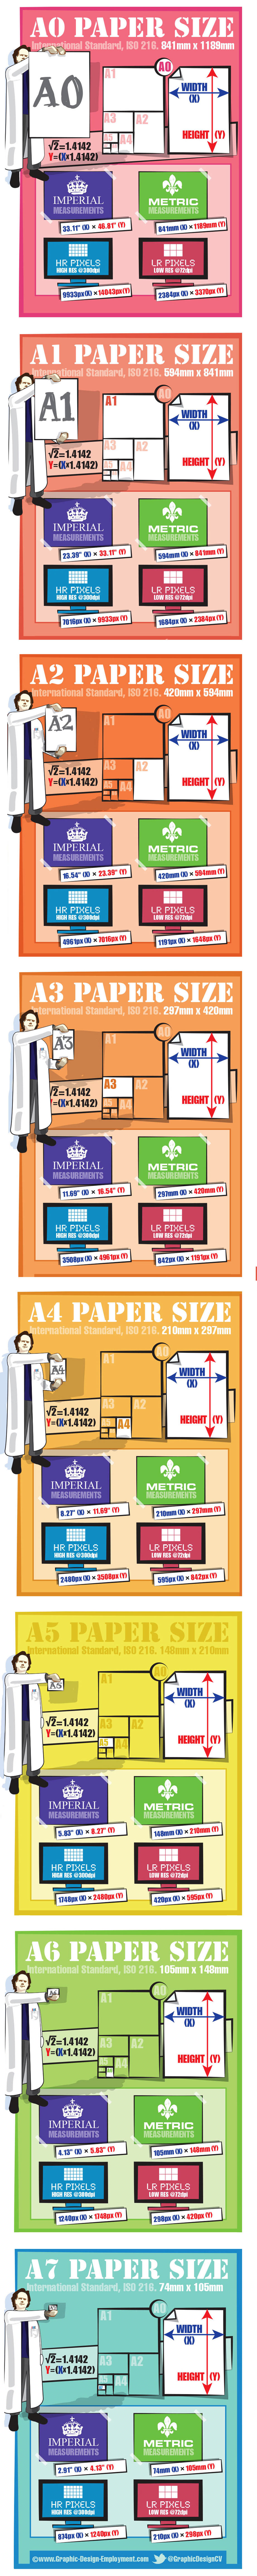 Standard Paper Sizes for Printing Infographic